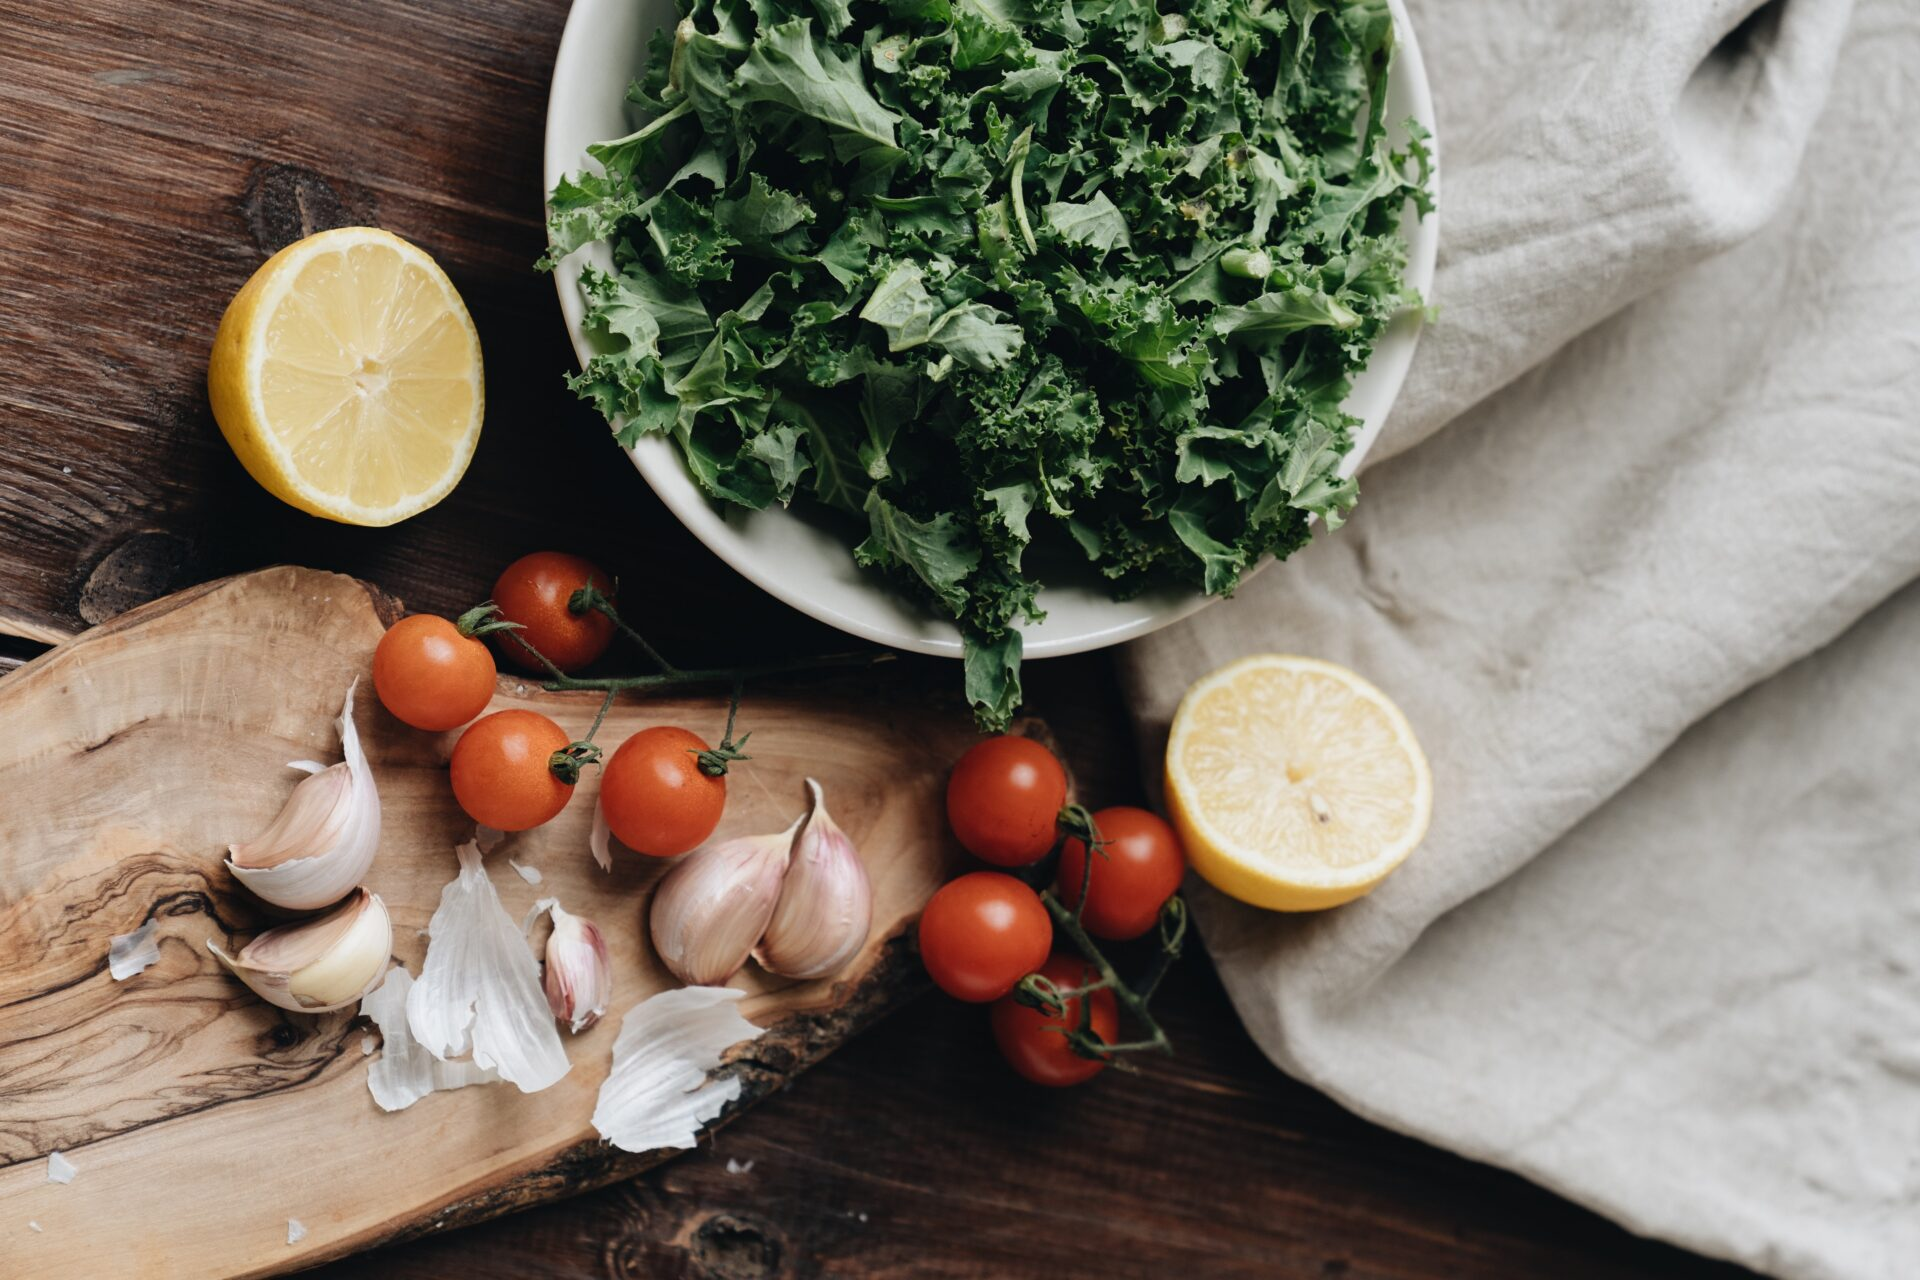 Healthy Winter vegetables including kale, lemon, cherry tomatoes, and garlic on a chopping board